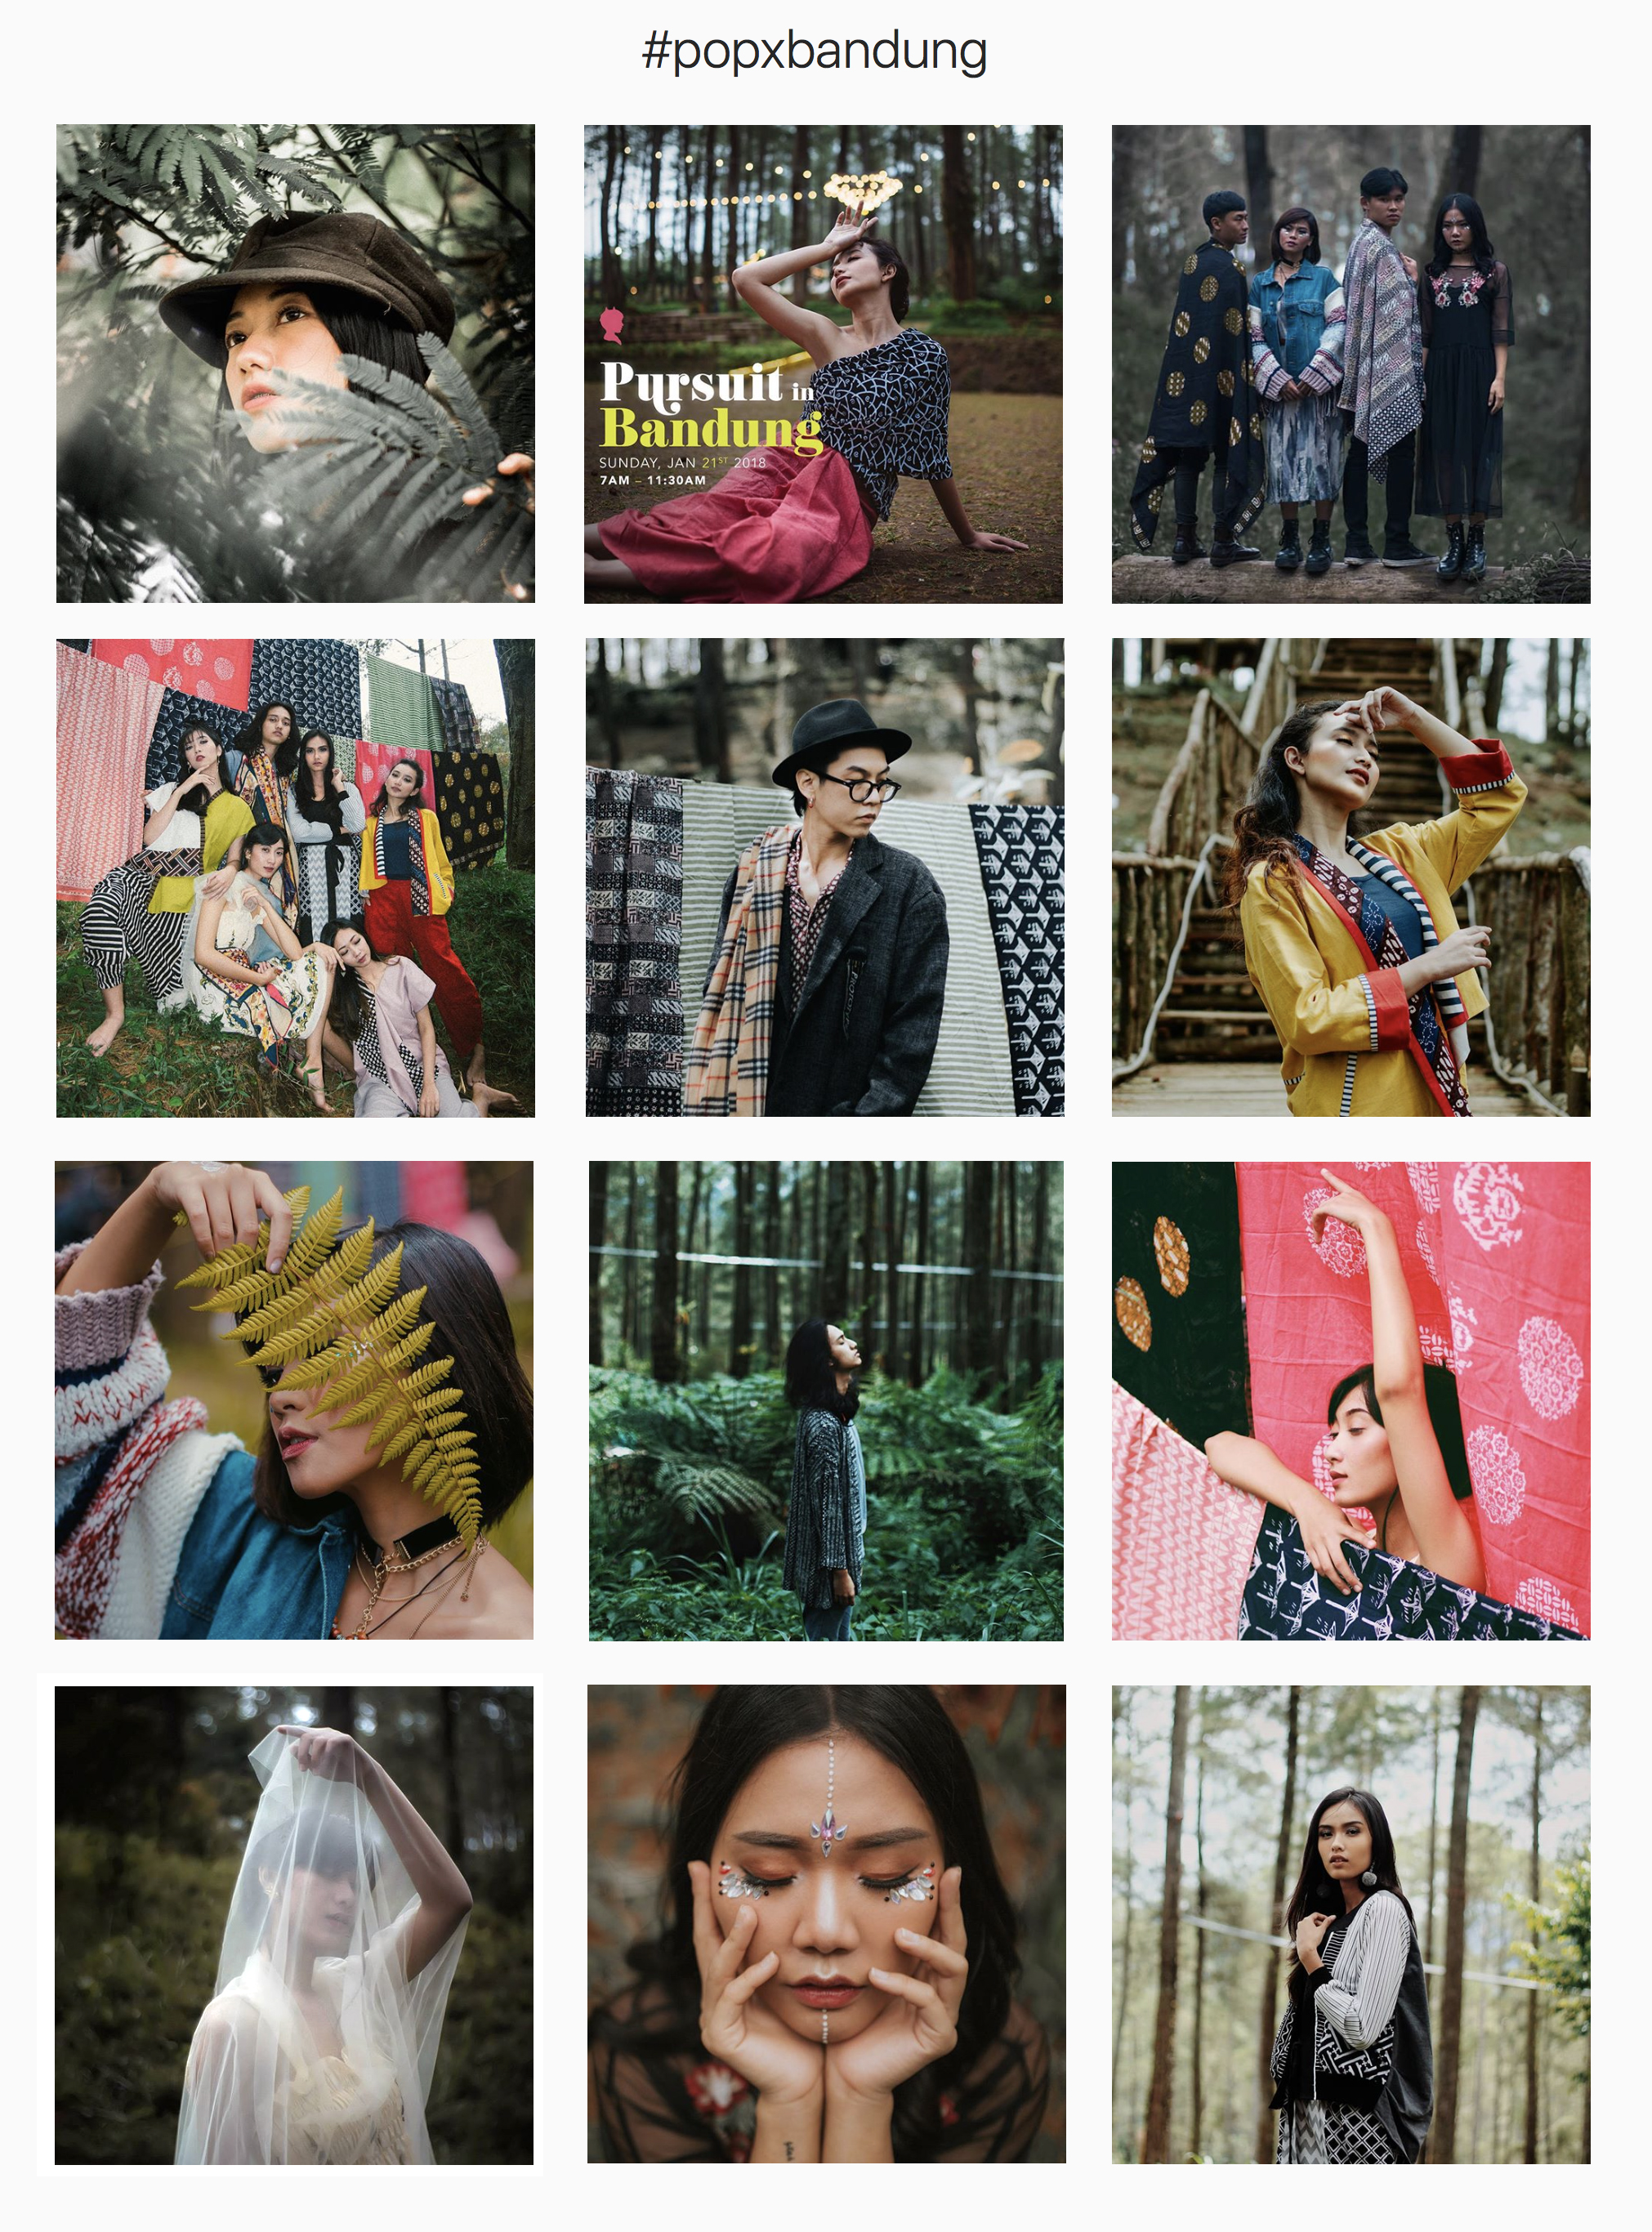 Select photos above via  #PoPxBandung